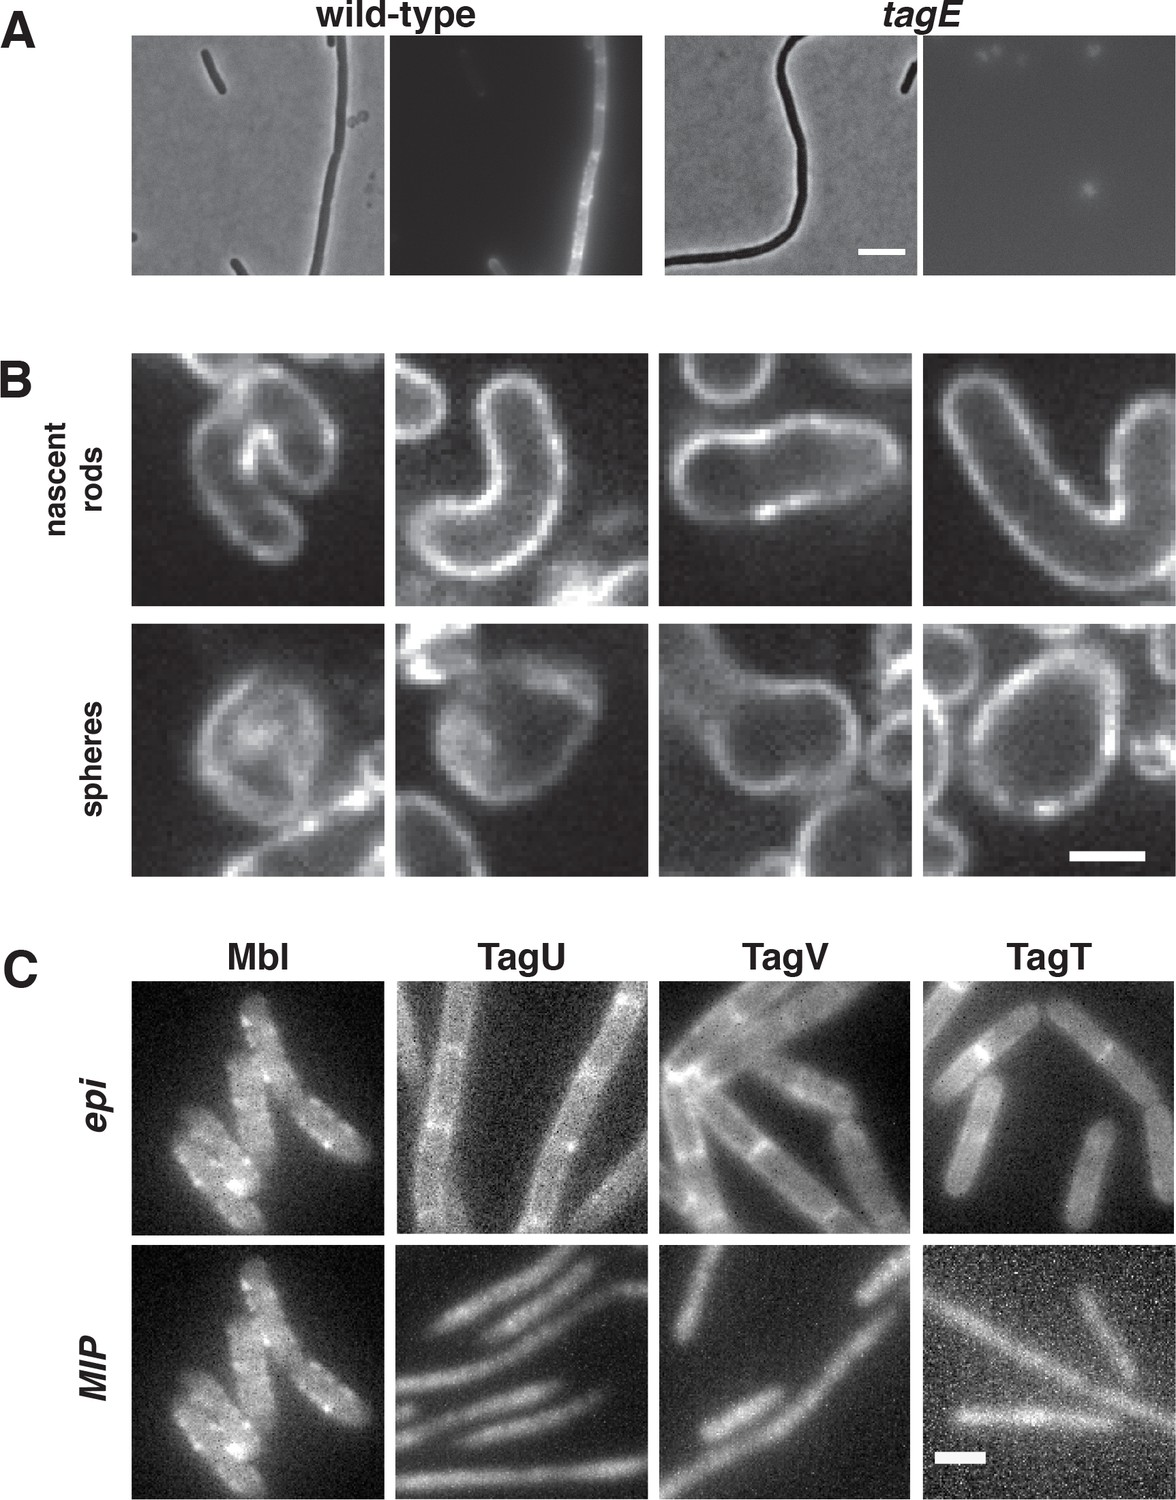 Mreb Filaments Align Along Greatest Principal Membrane Curvature To In This Illustration The Prokaryotic Cell Is Rod Shaped Circular Cona Staining Of Cells During Shape Recovery And Localization Wta Ligases